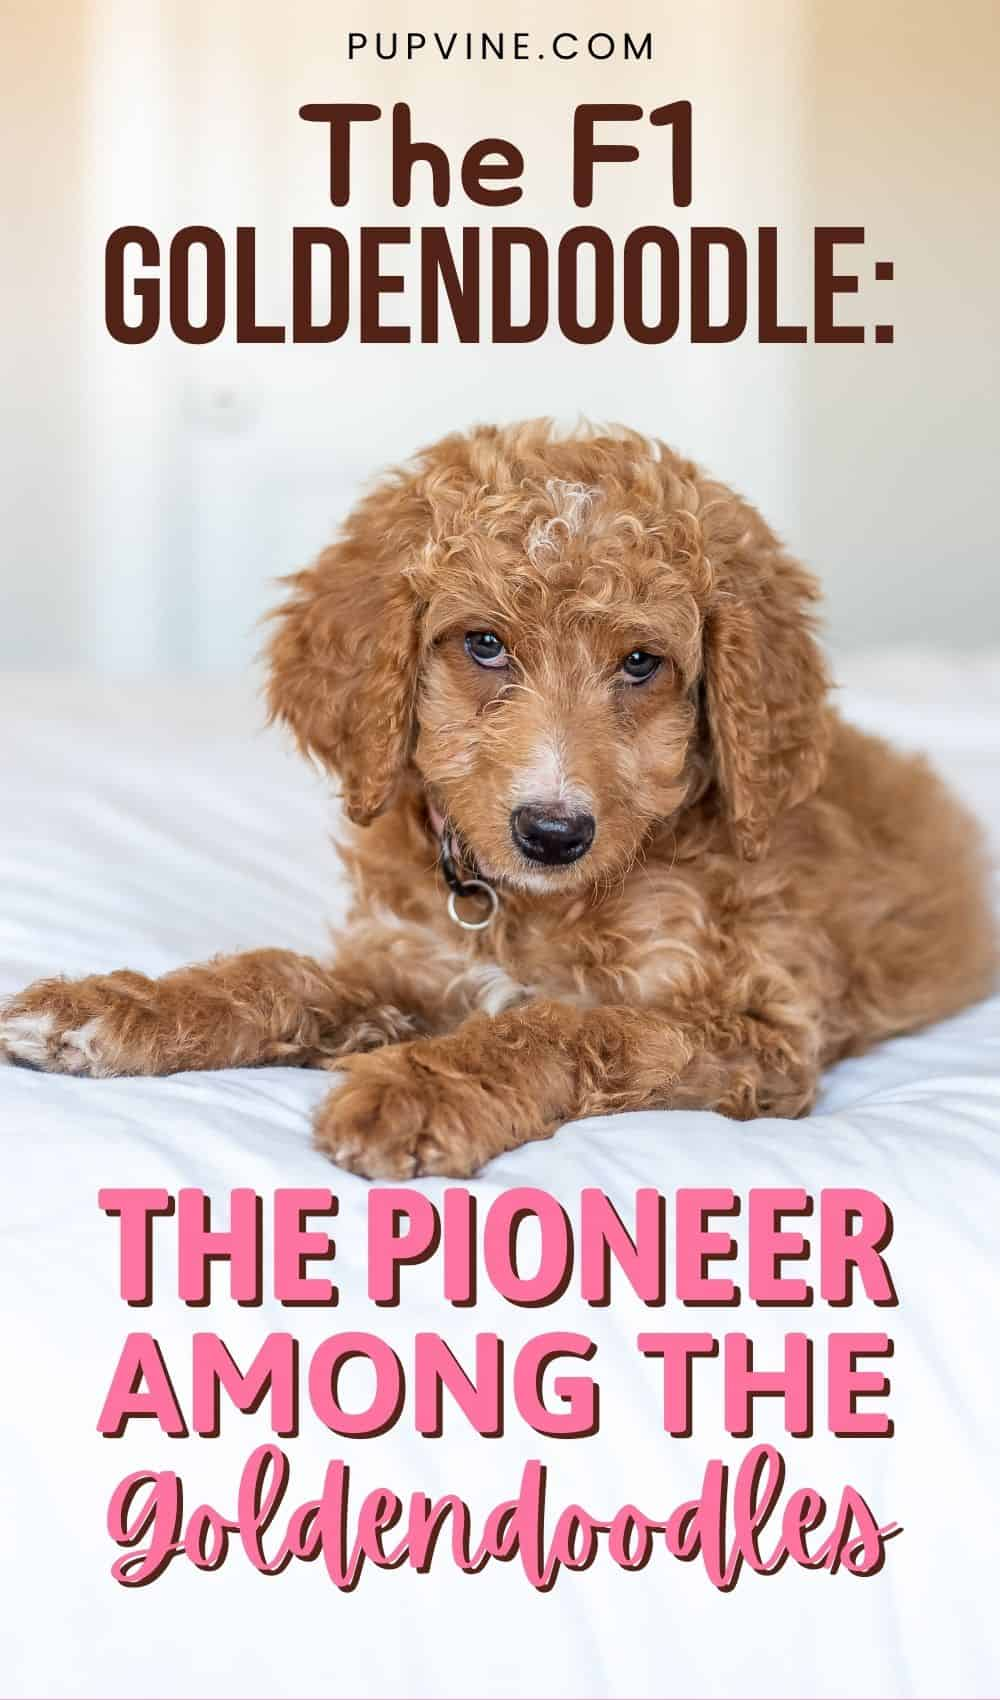 The F1 Goldendoodle: The Pioneer Among The Goldendoodles